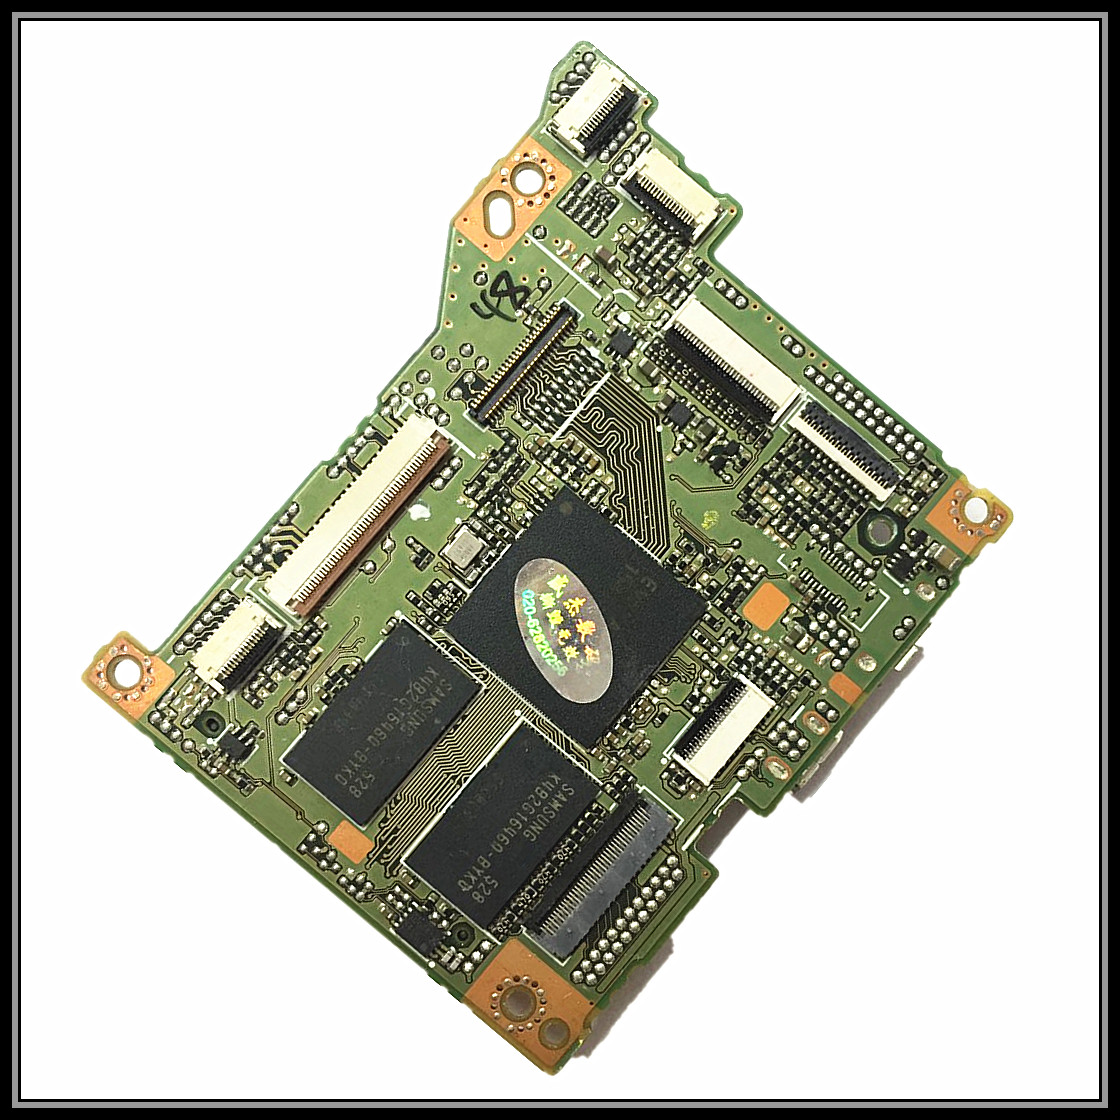 Free Shipping !! 100% original P610 Digital Camera Main Board/Mother Board testing working for Nikon P610 free shipping original 100% tested working fp222w driver board q22w6 board fp222w board of 4h 03v01 a00 signal